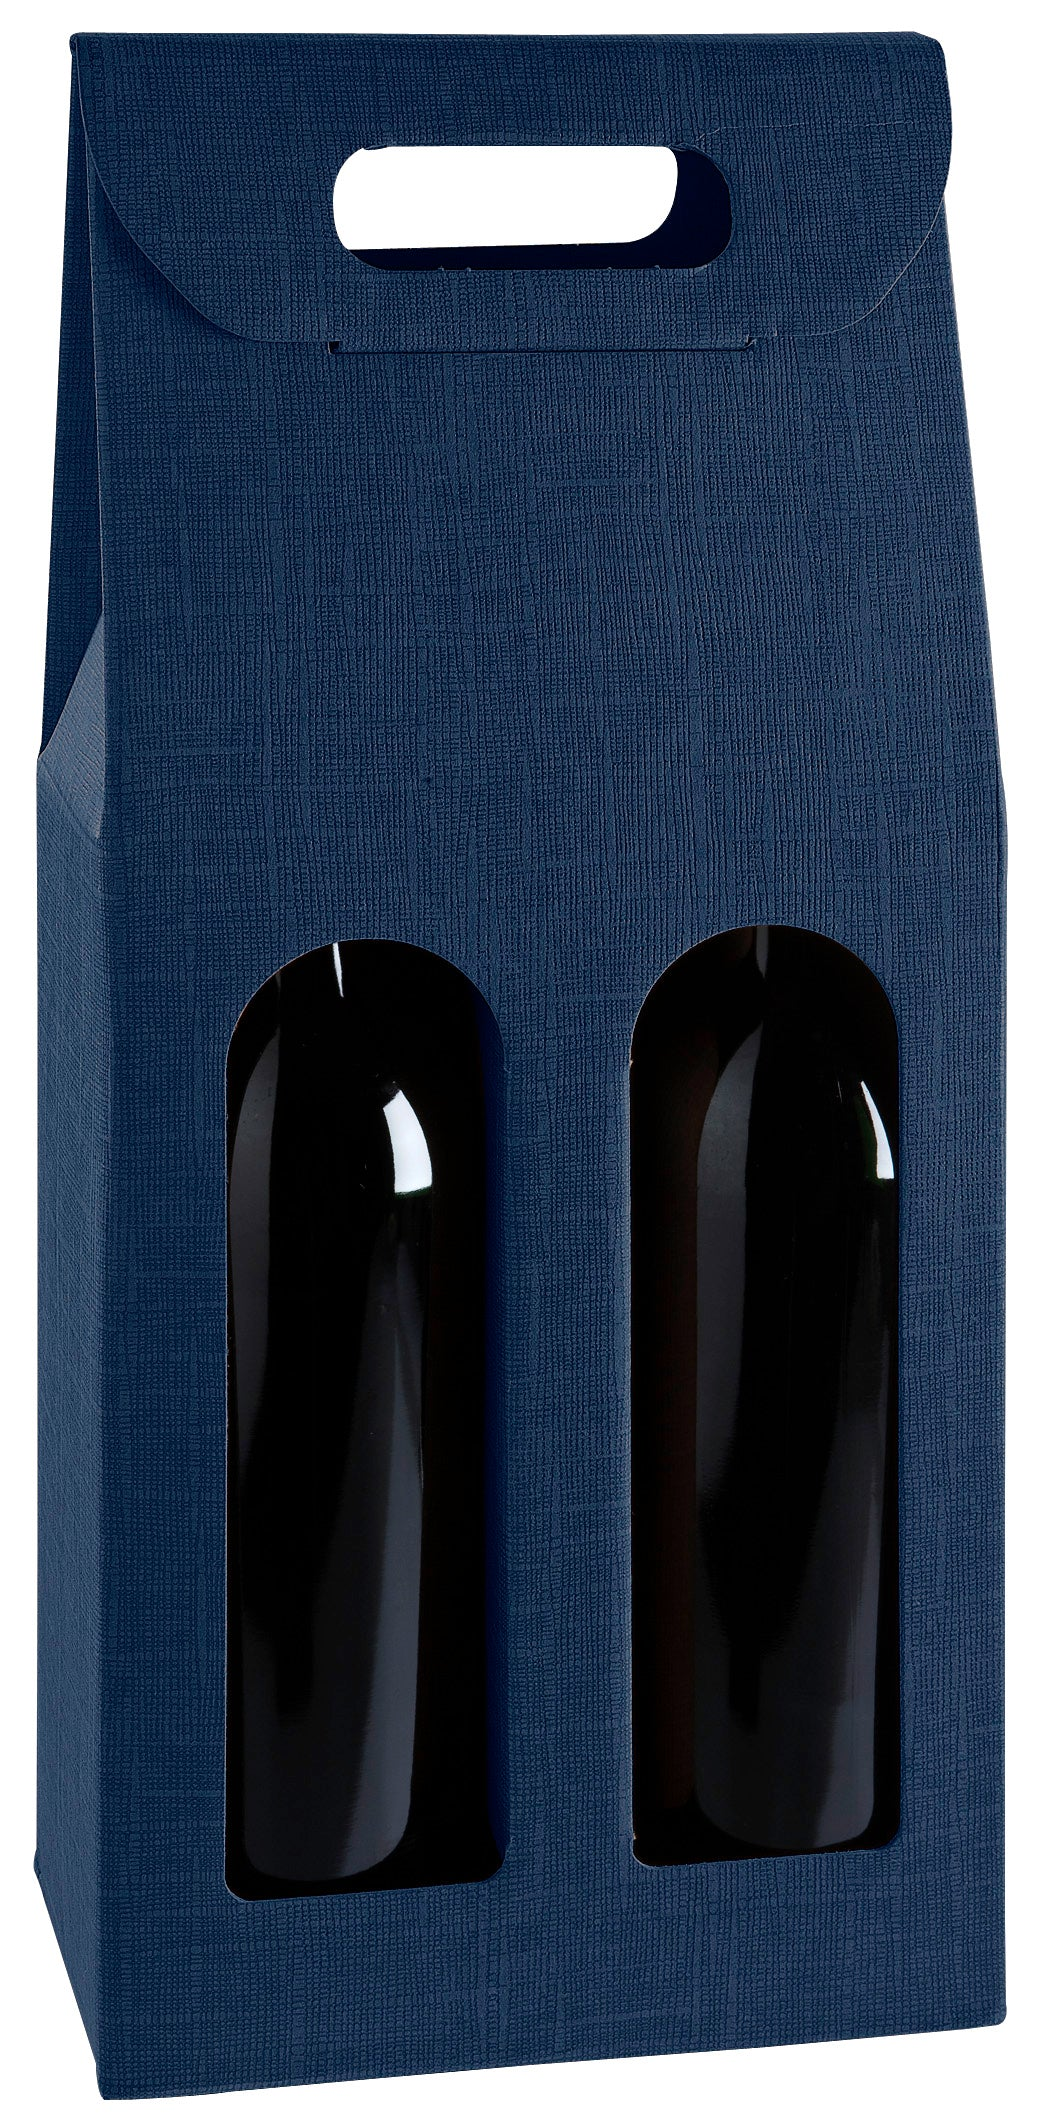 Scala carrier gift box with window for 2 bottles in blue (x25)